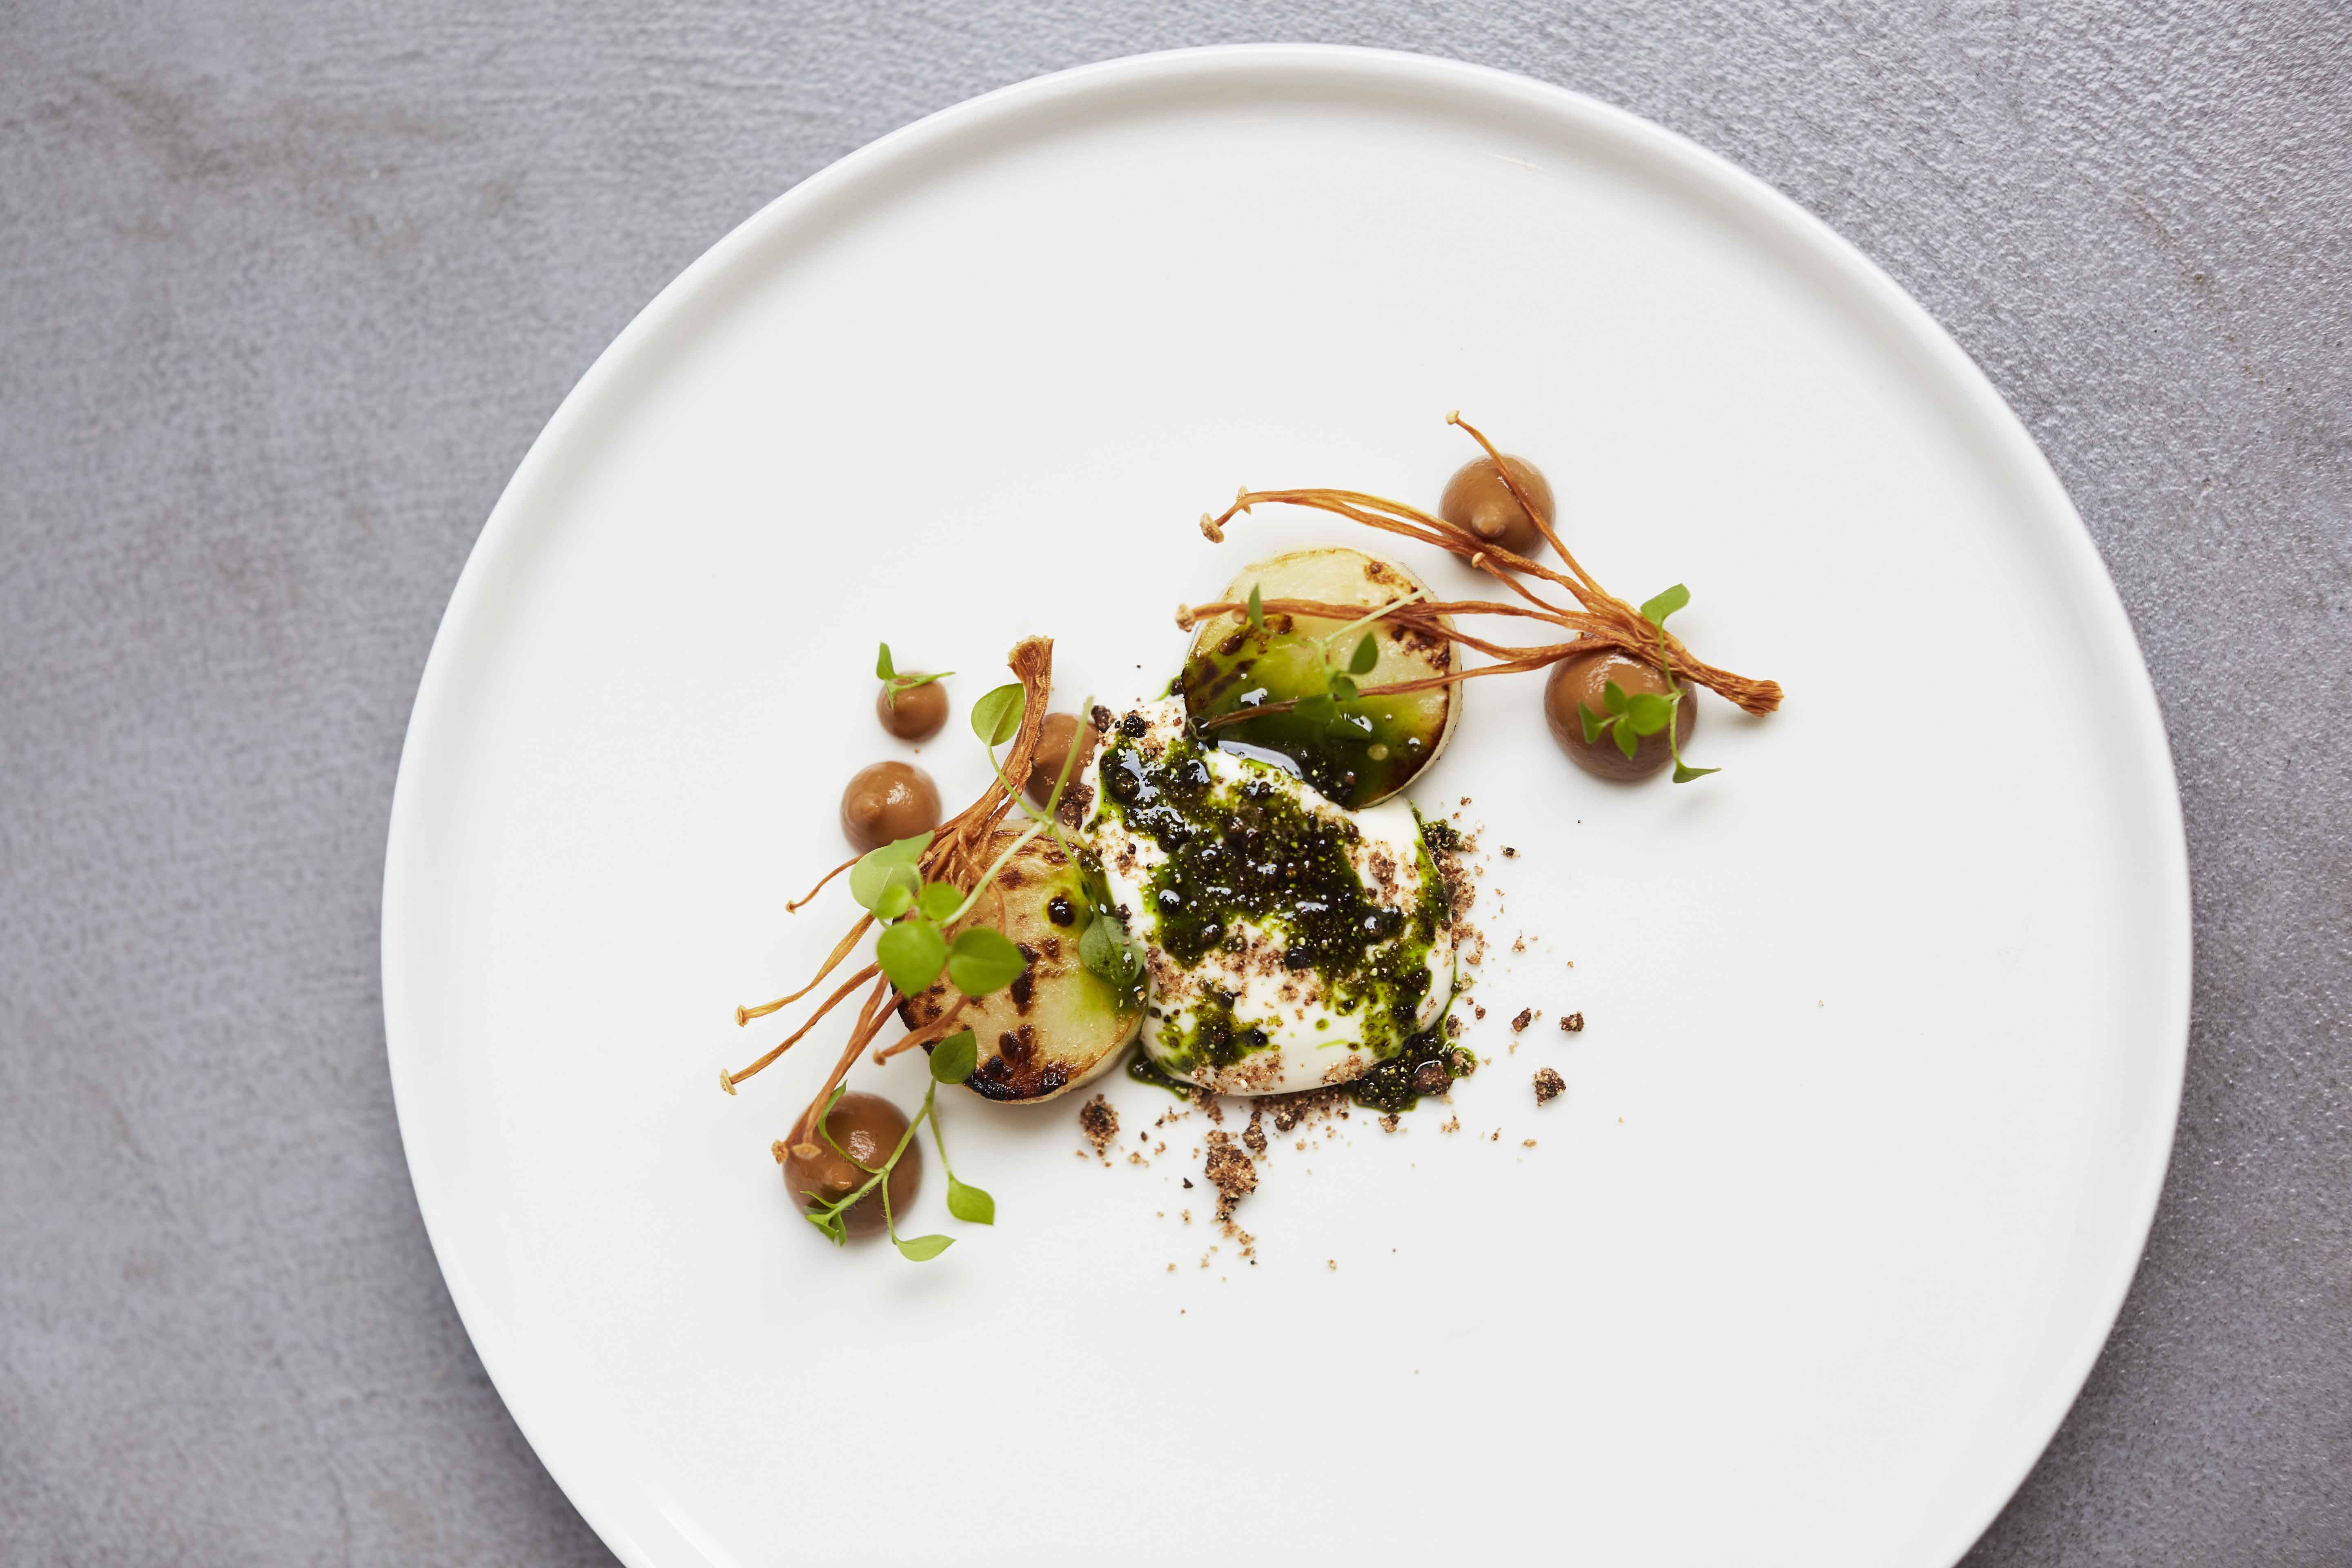 Salt Baked Celeriac at Roganic Simon Rogan, photograph by Lisa Linder